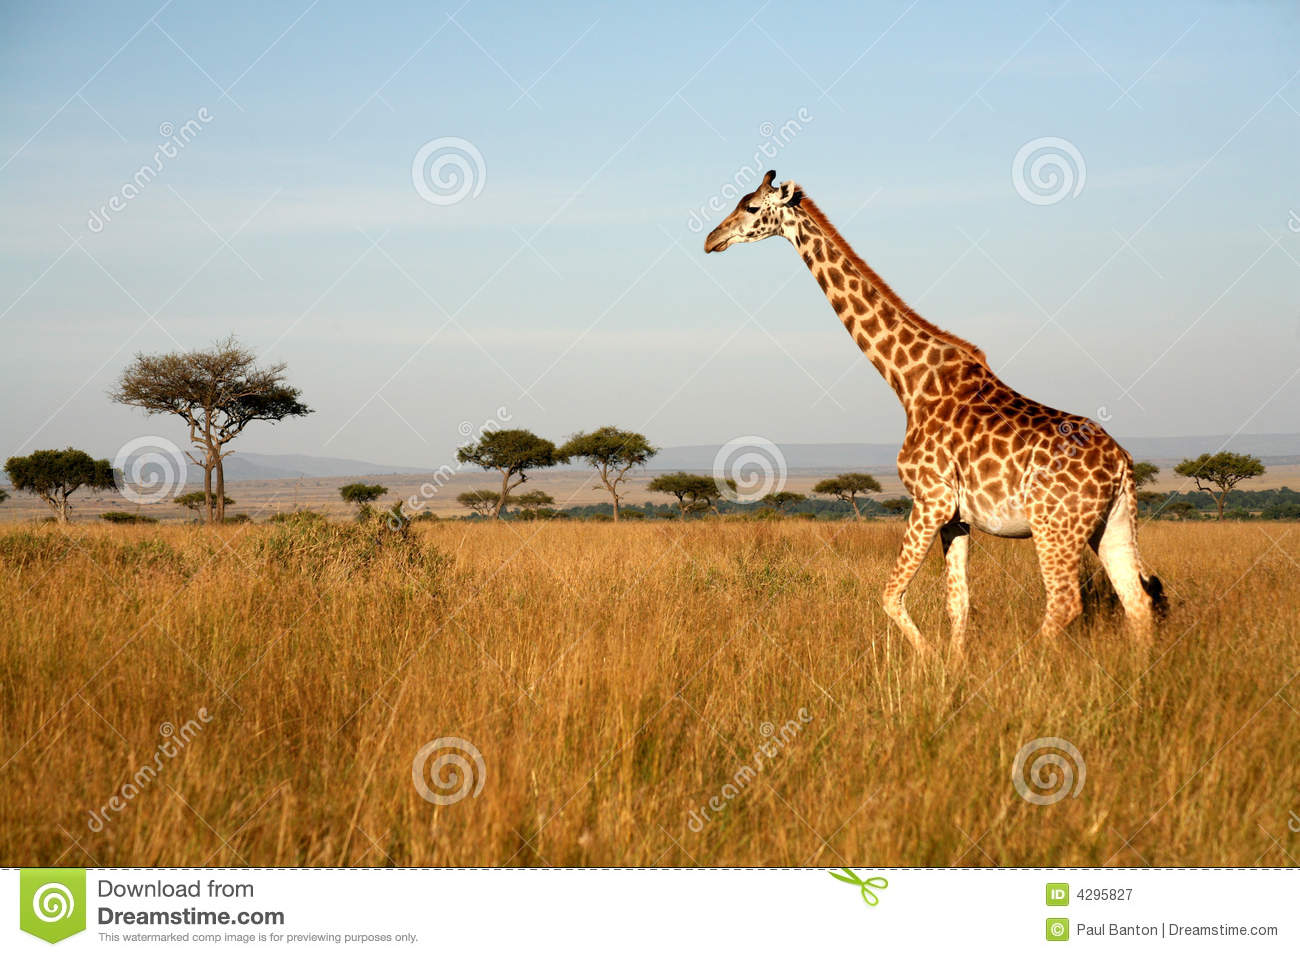 Giraffe Stock Images - Download 34,682 Royalty Free Photos | 1300 x 957 jpeg 164kB